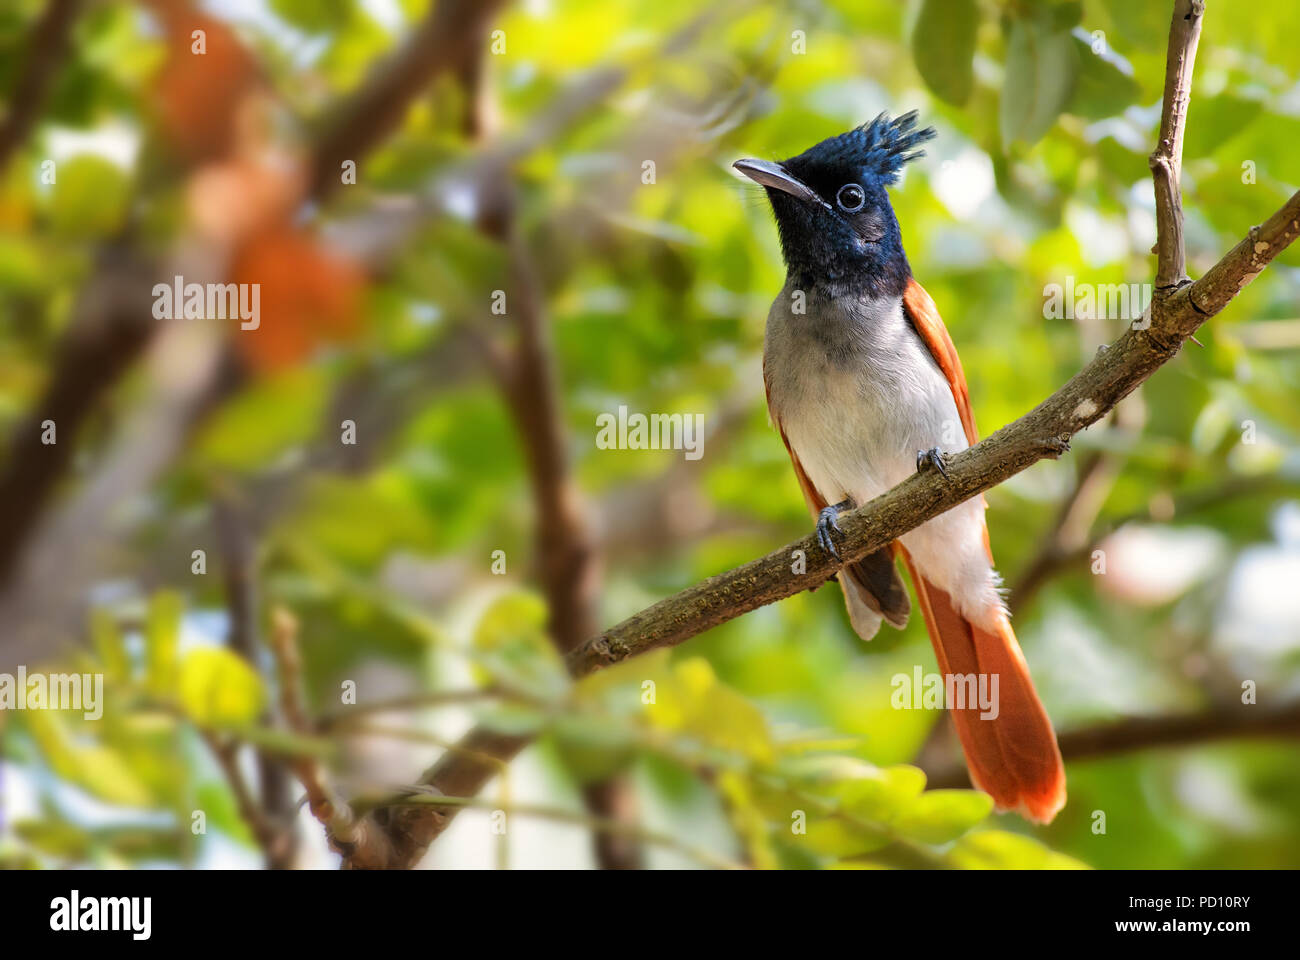 Asian Paradise-flycatcher - Terpsiphone paradisi, beautiful black headed passerine bird from Sri Lankan woodlands and gardens. Stock Photo